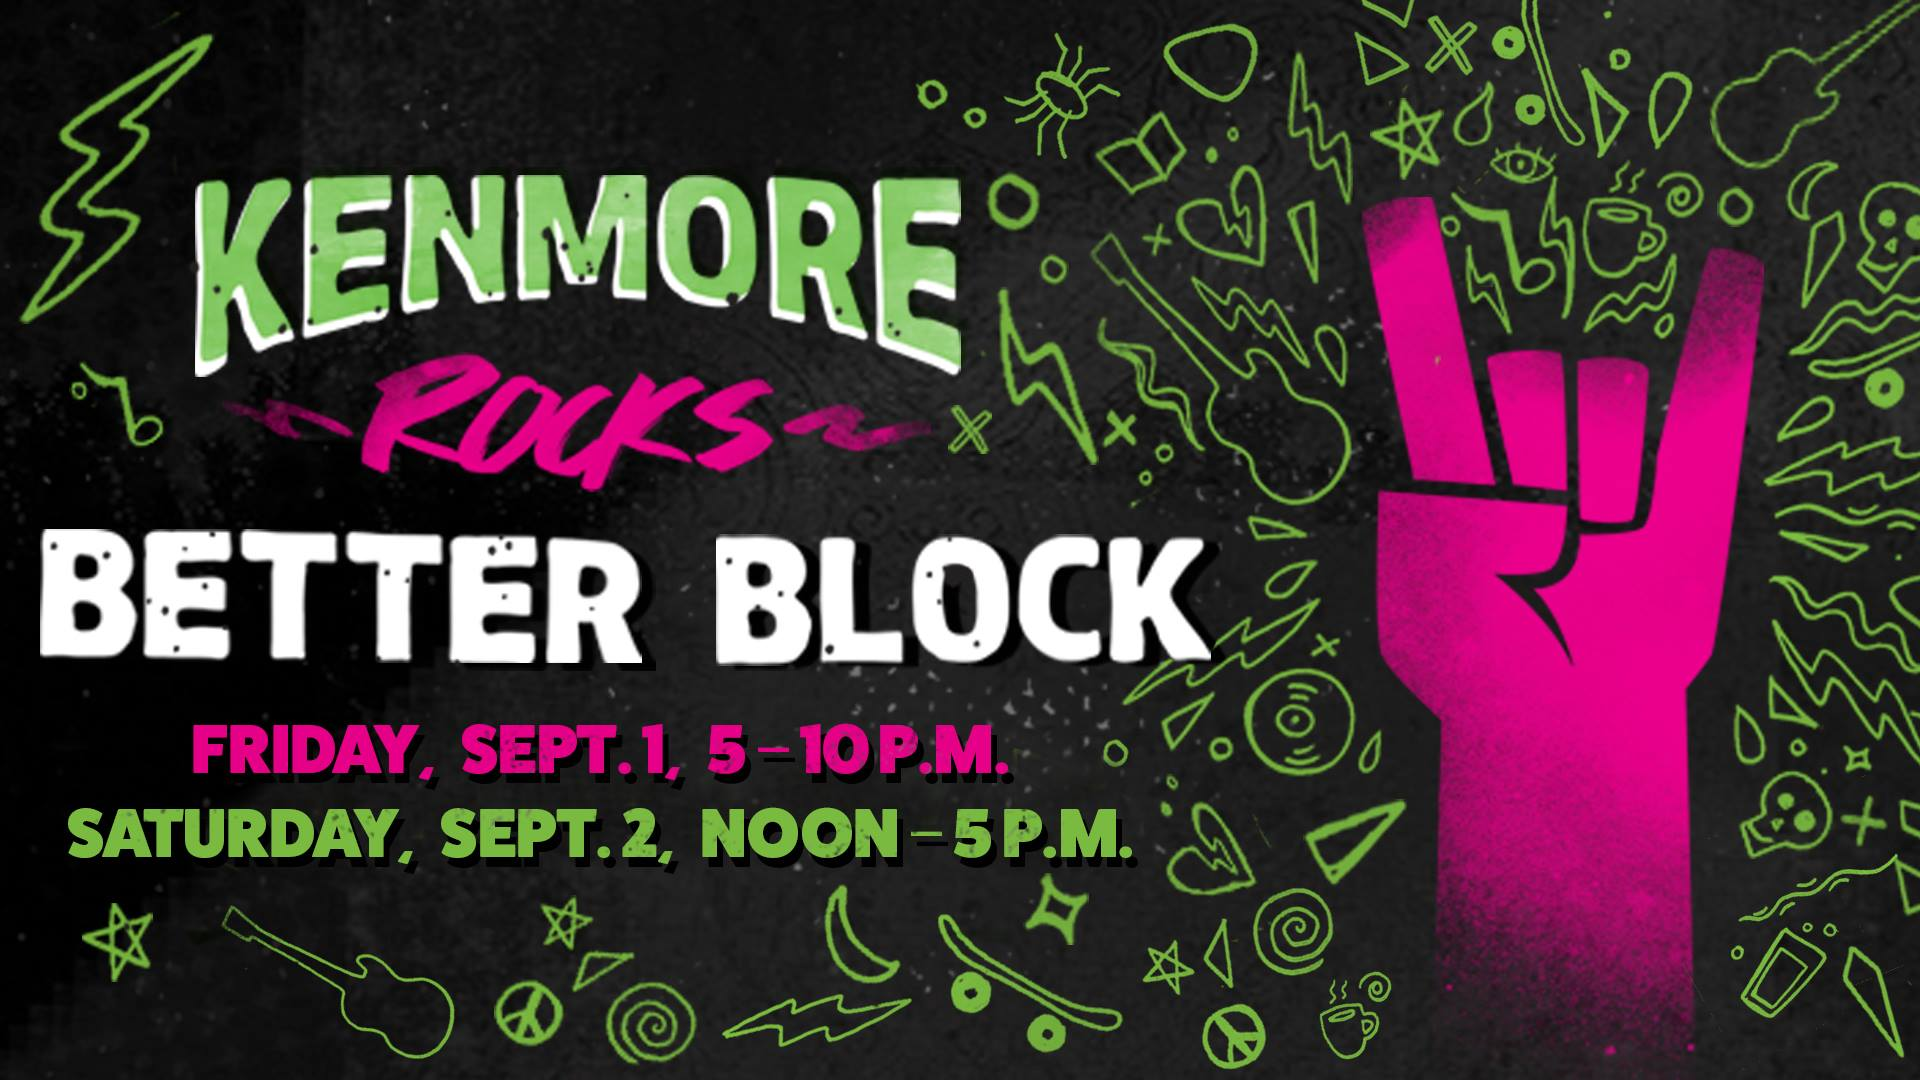 "On Friday Sept. 1, 5 - 10 p.m. and Saturday, Sept. 2, noon - 5 p.m., Kenmore Boulevard will host Better Block, a neighborhood engagement event that lets residents visualize what's possible in an area in terms of livability and business development. Better Block events are meant to give people a glimpse of redevelopment ideas for a couple of days. Temporary changes might include closing lanes of traffic and establishing a bike lane, creating ""pop-up"" storefronts and sidewalk cafes, and adding a community gathering space. It's all meant to spark ideas of how to transform a neighborhood into a more livable, walkable and economically viable area.     RSVP on the Facebook event page NOW!"